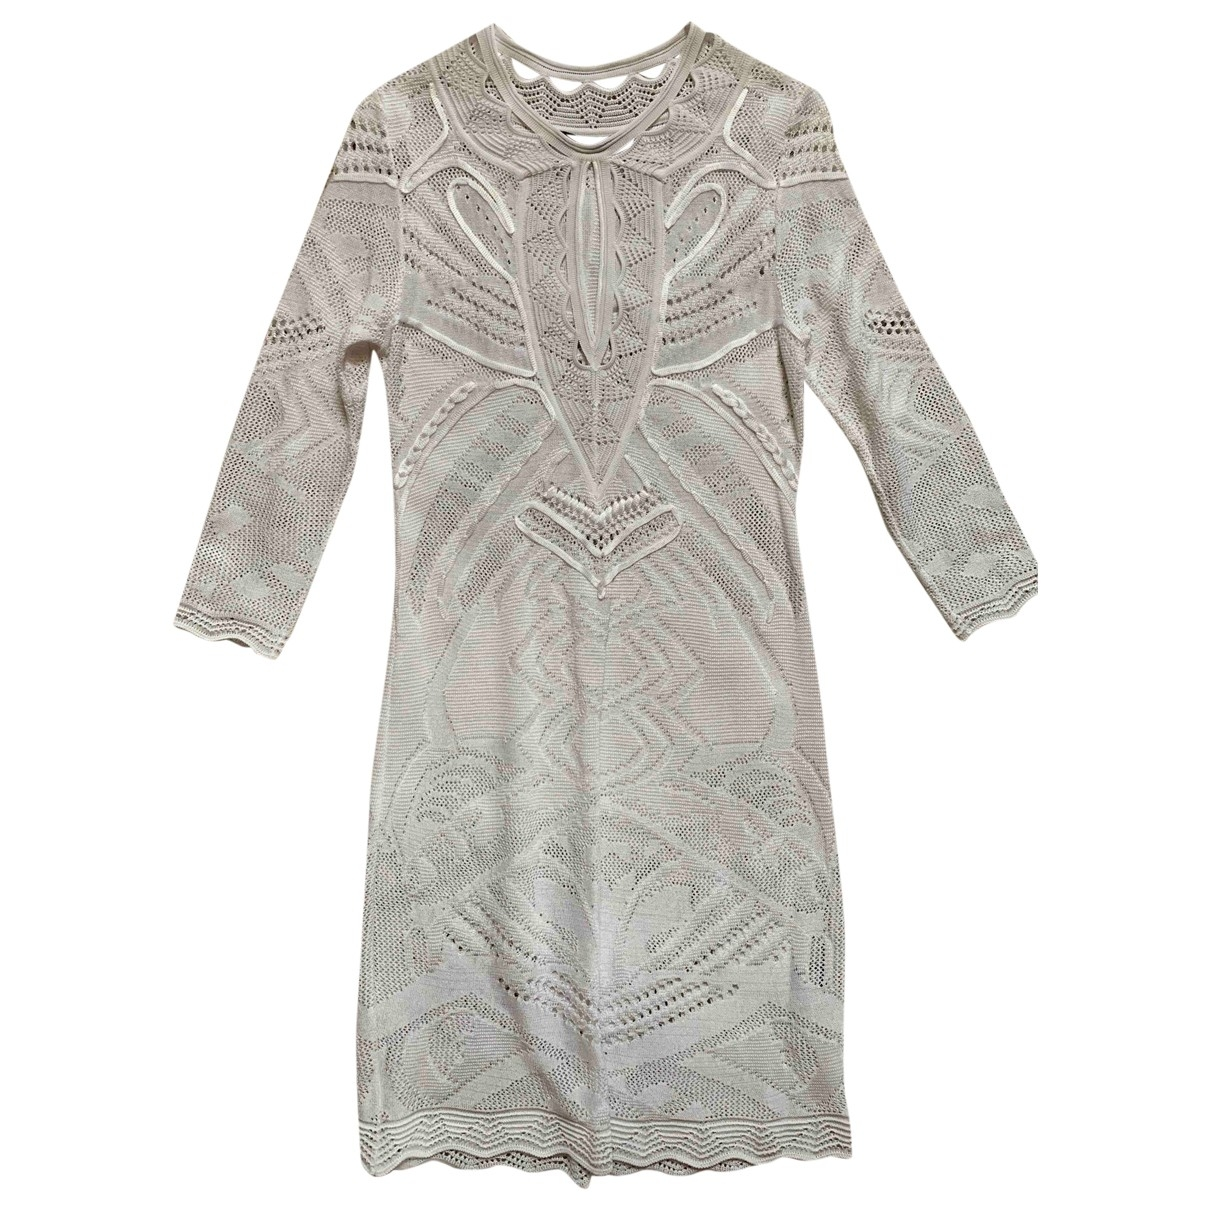 Roberto Cavalli \N White Lace dress for Women 38 IT